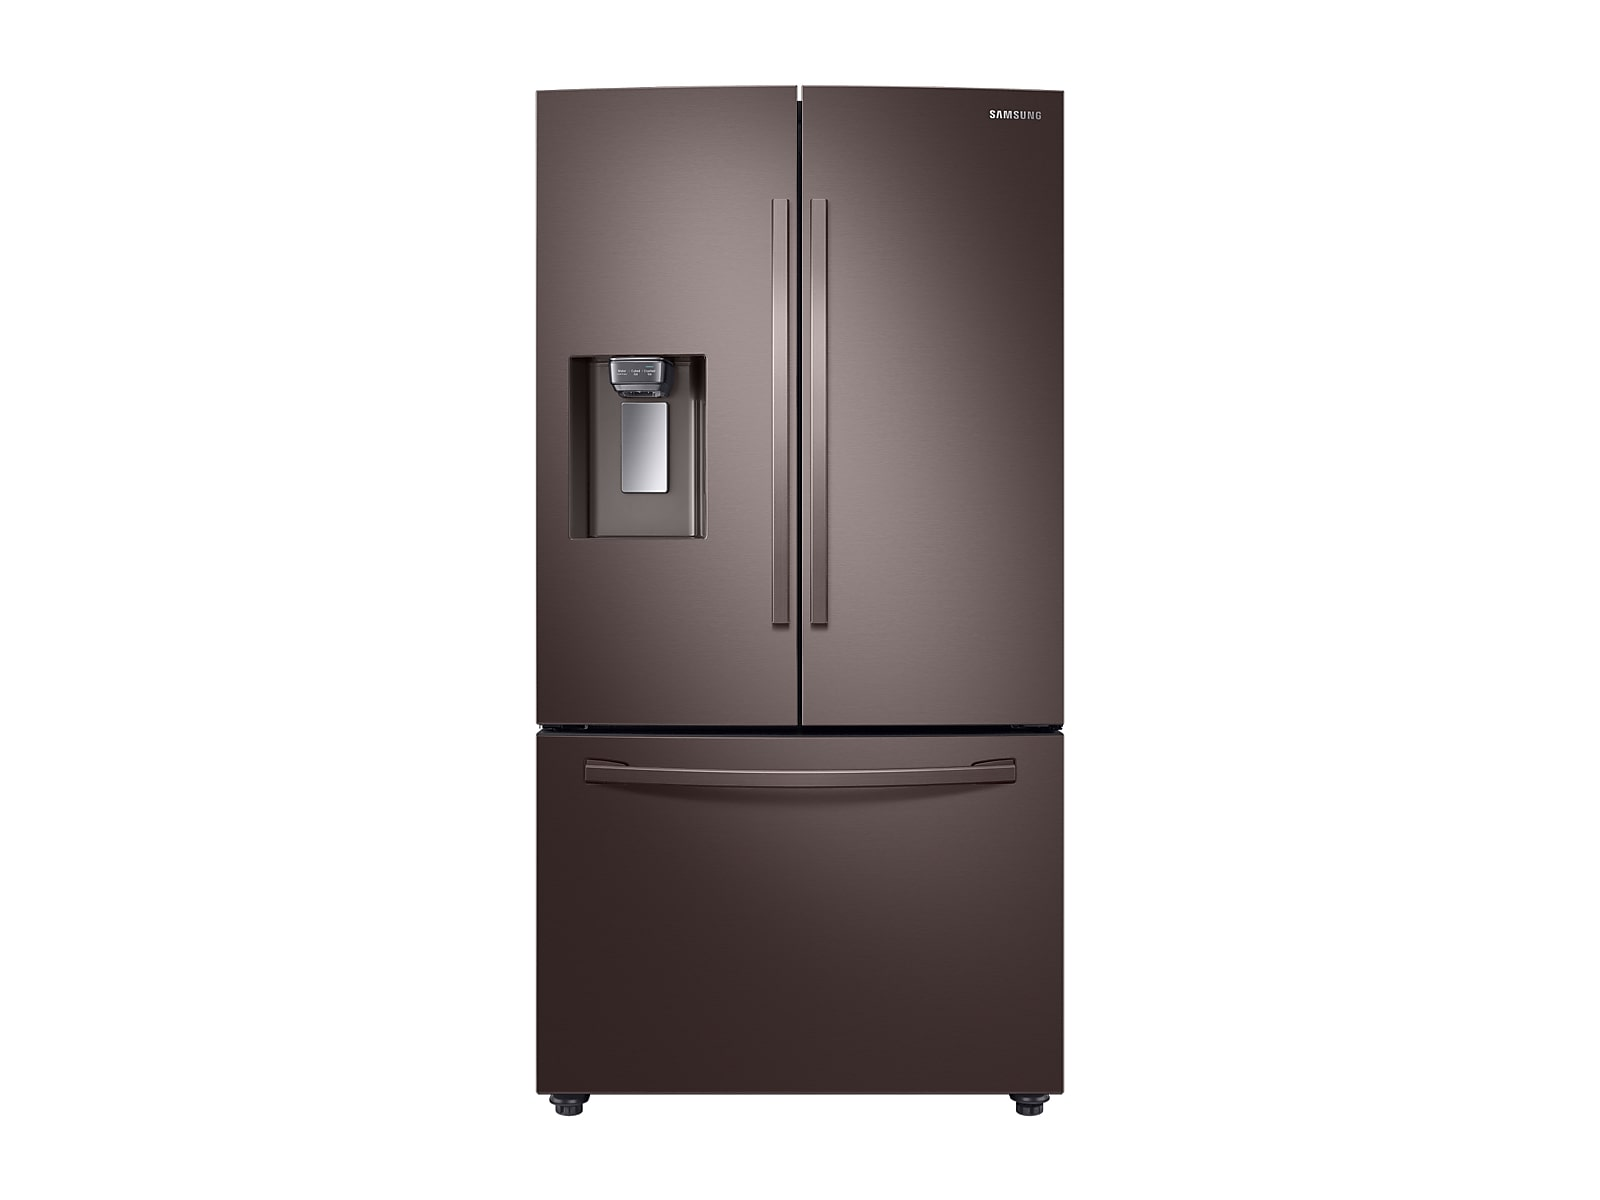 Samsung 23 cu. ft. Counter Depth 3-Door French Door Refrigerator with CoolSelect Pantry™ in Tuscan Stainless Steel(RF23R6201DT/AA)